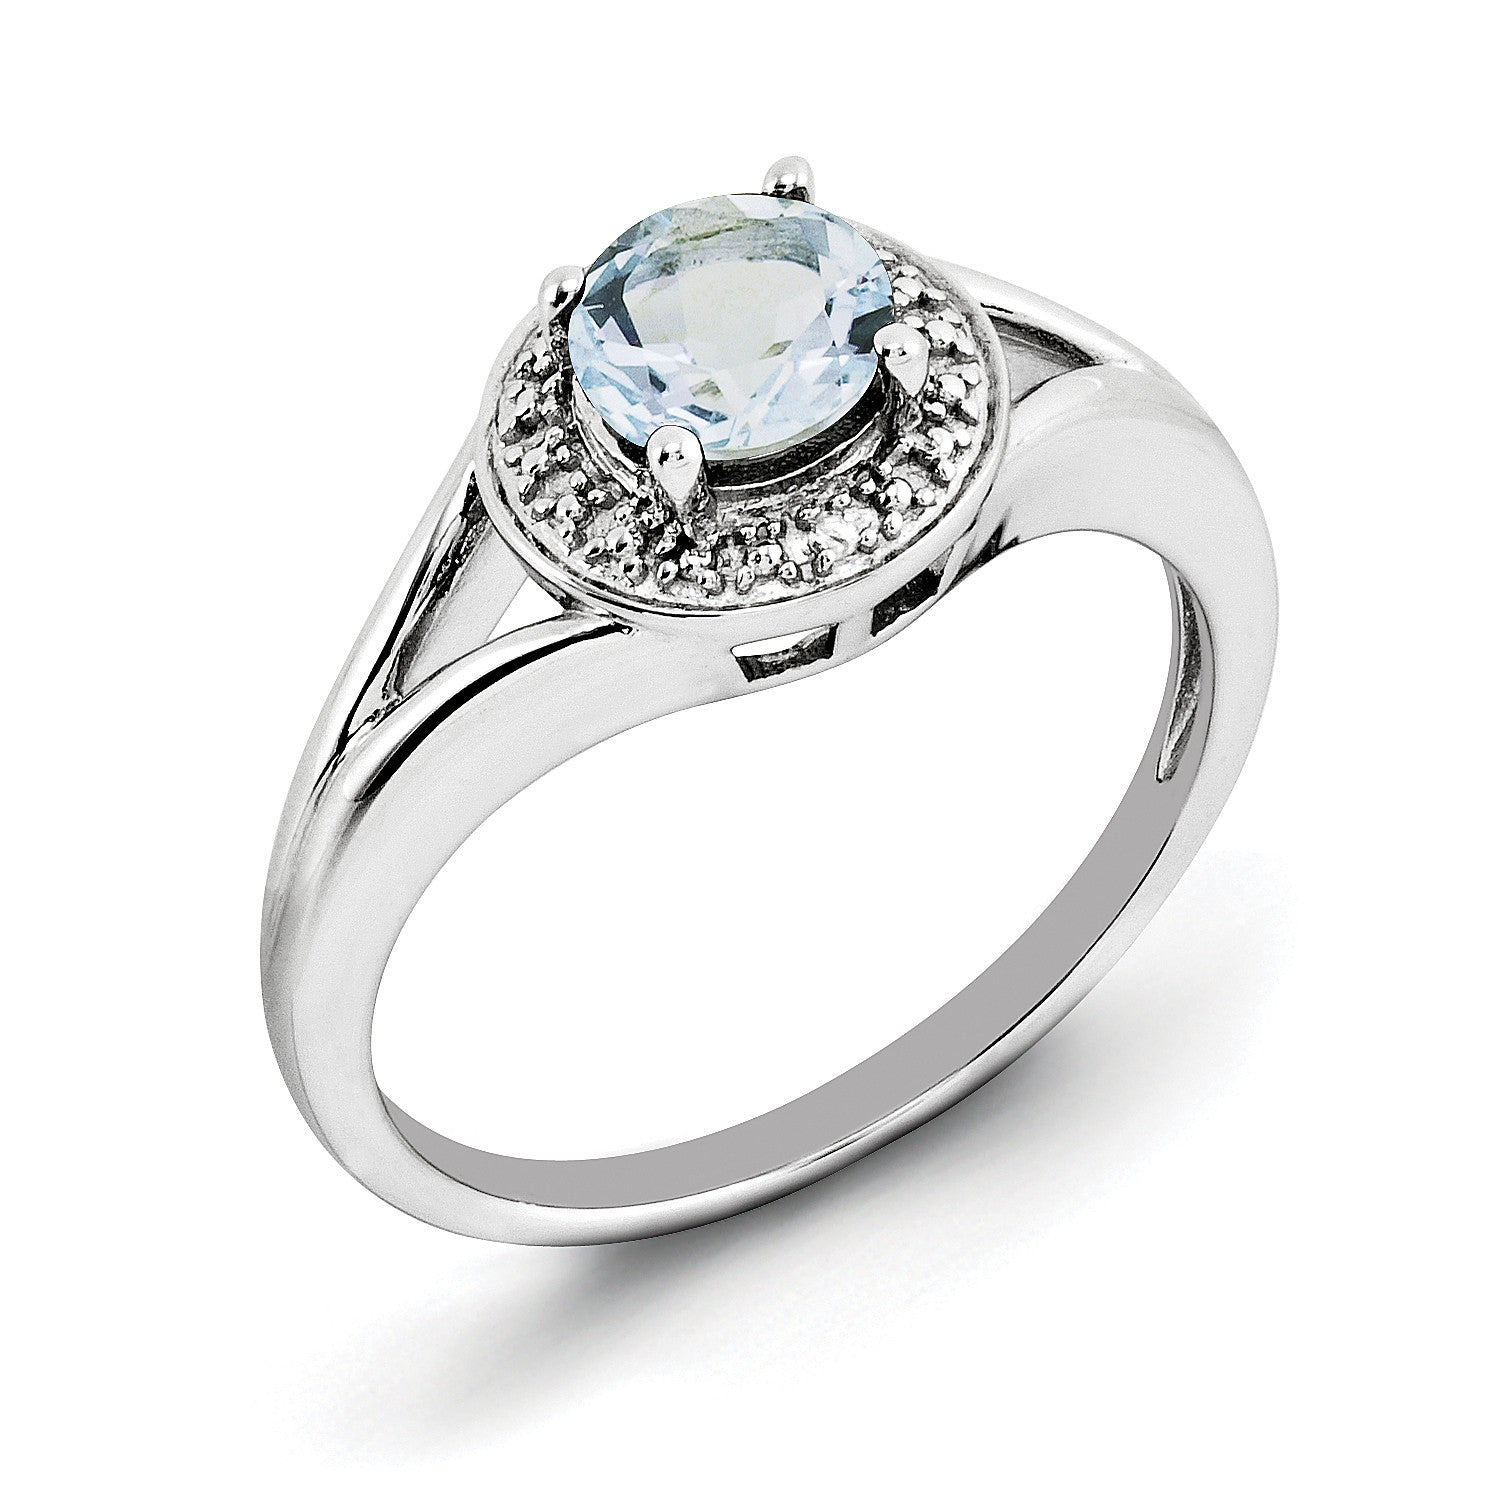 Sterling Silver Rhodium-plated Diam. & Aquamarine Ring QBR11MAR - shirin-diamonds